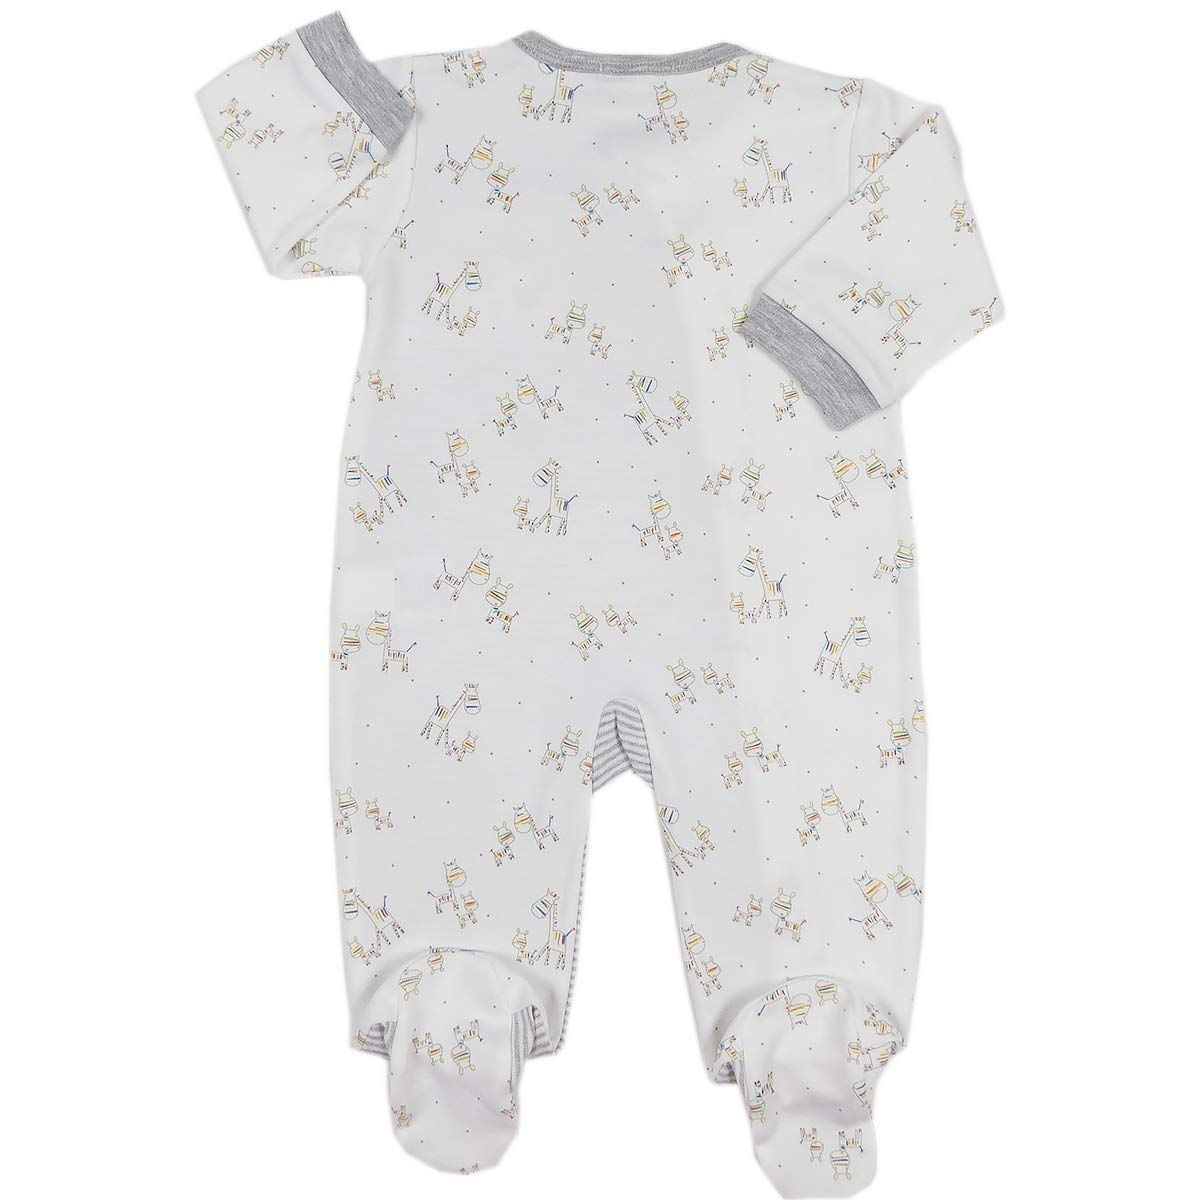 Drake General Store Baby Unisex Onesie One-Piece Footed Thermal Pajamas